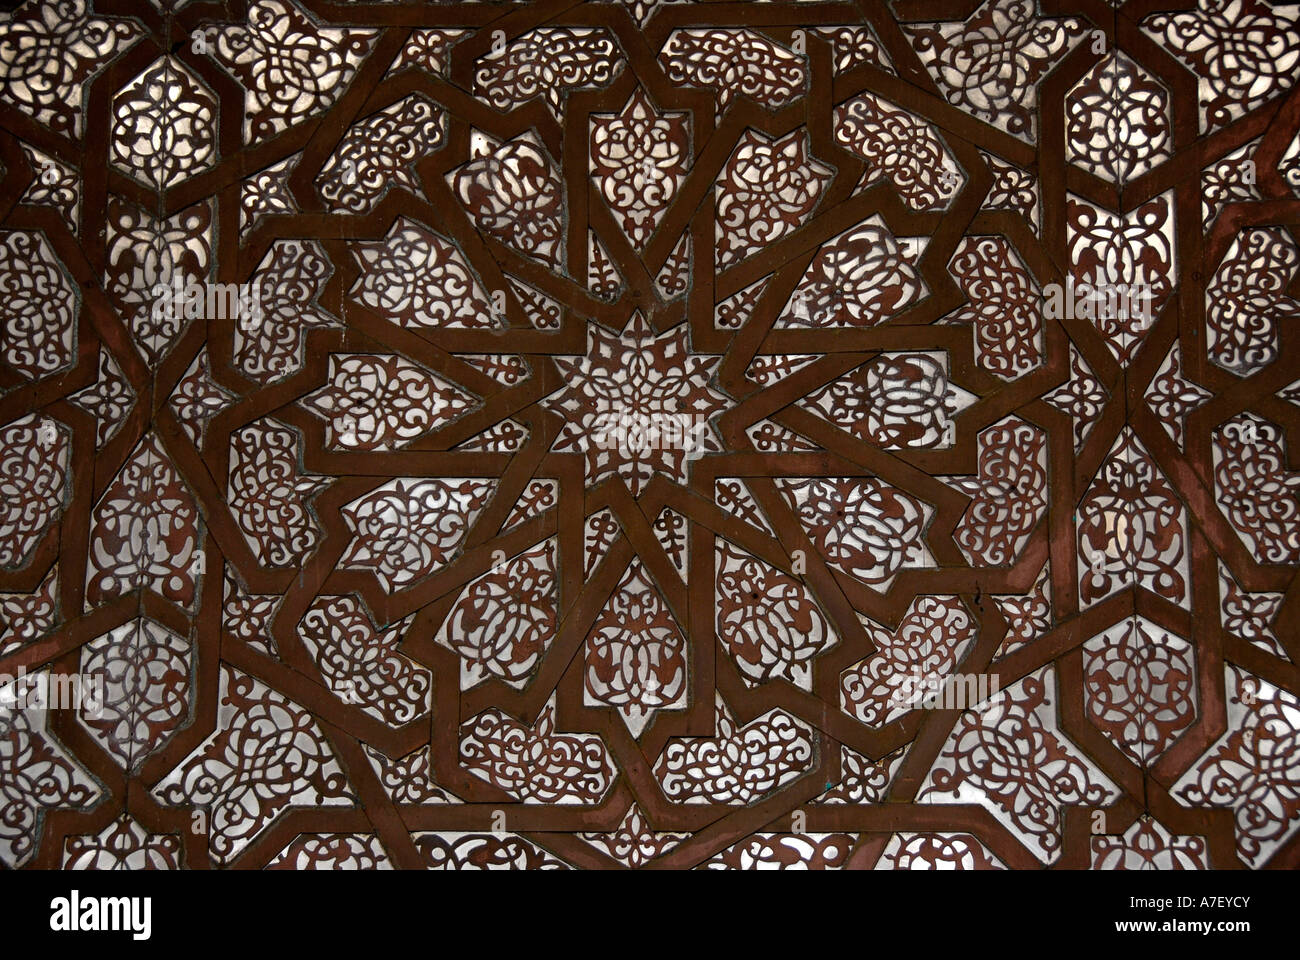 Fine arts decoration of a wall in mosque Hassan II Casablanca Morocco Stock Photo